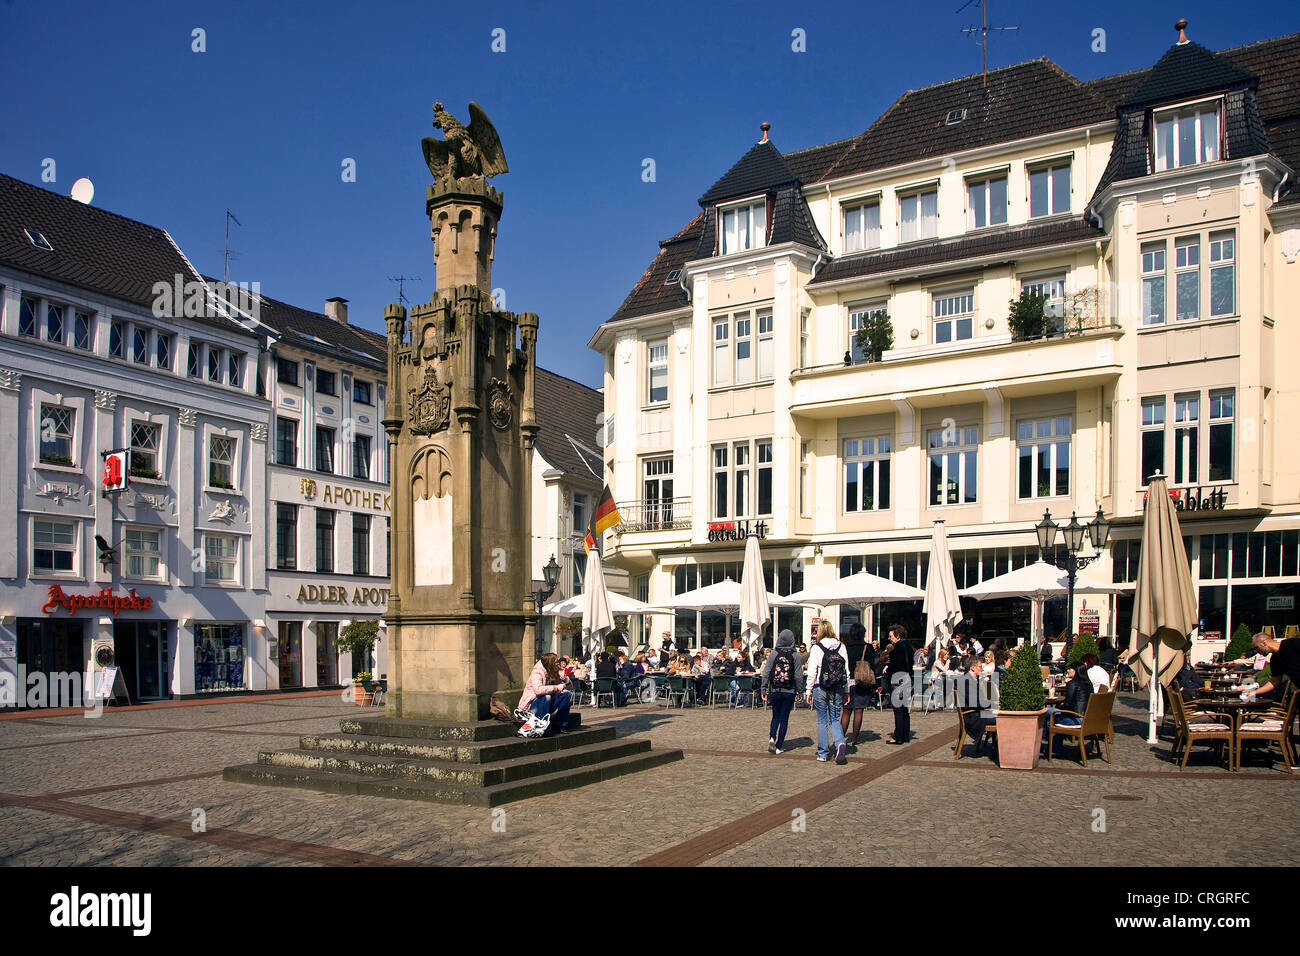 Extrablatt In Moers Frühstücksblog Moers Stock Photos Moers Stock Images Alamy